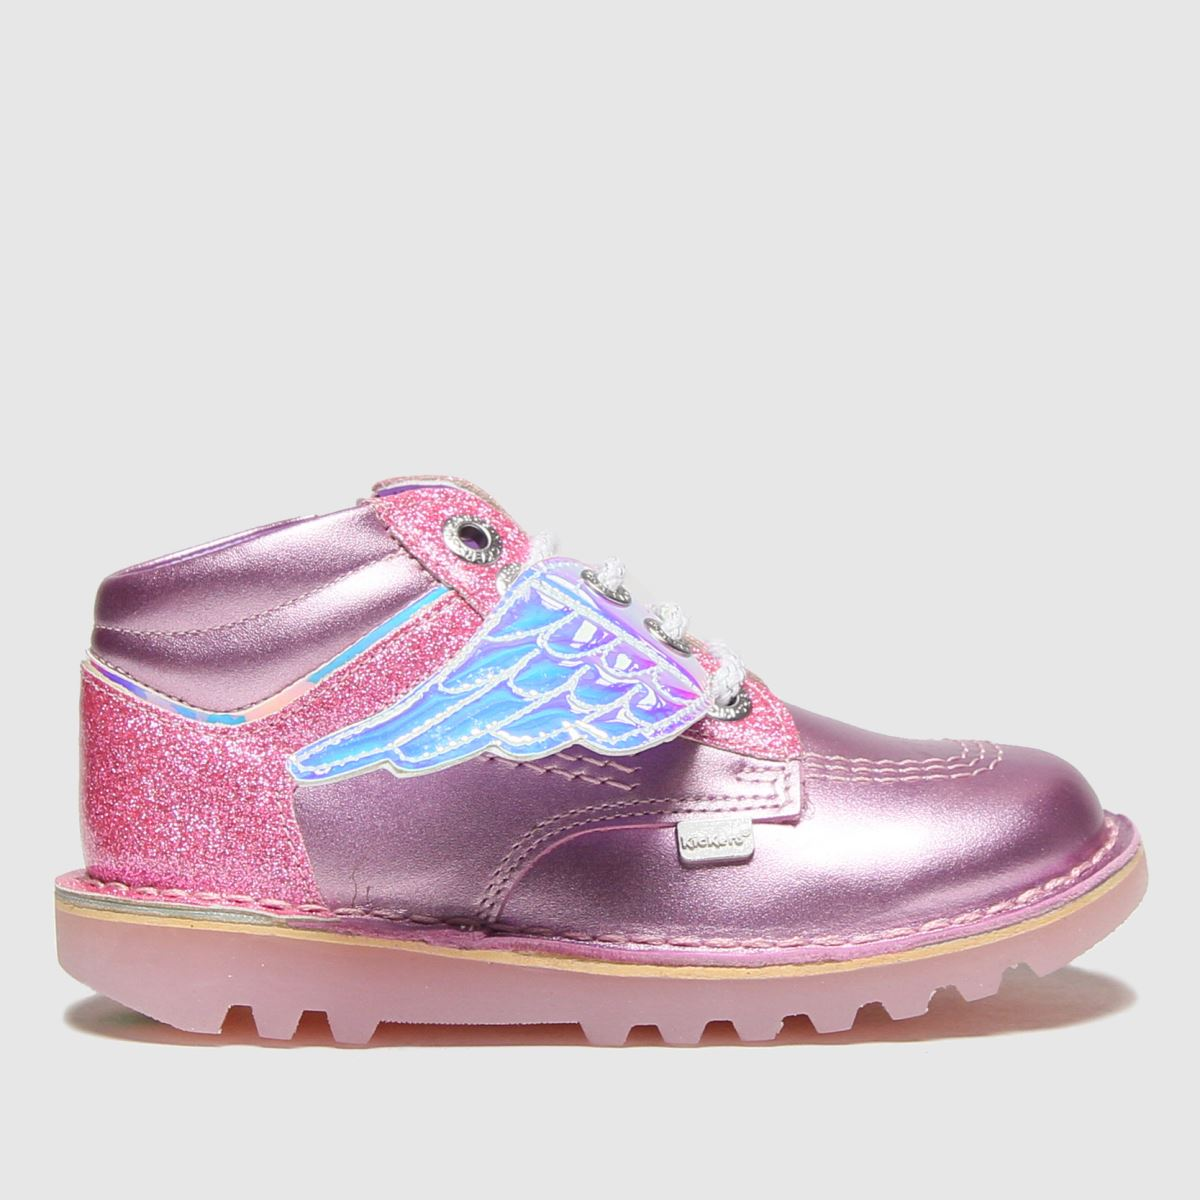 Kickers Pink Hi Angelic Boots Toddler